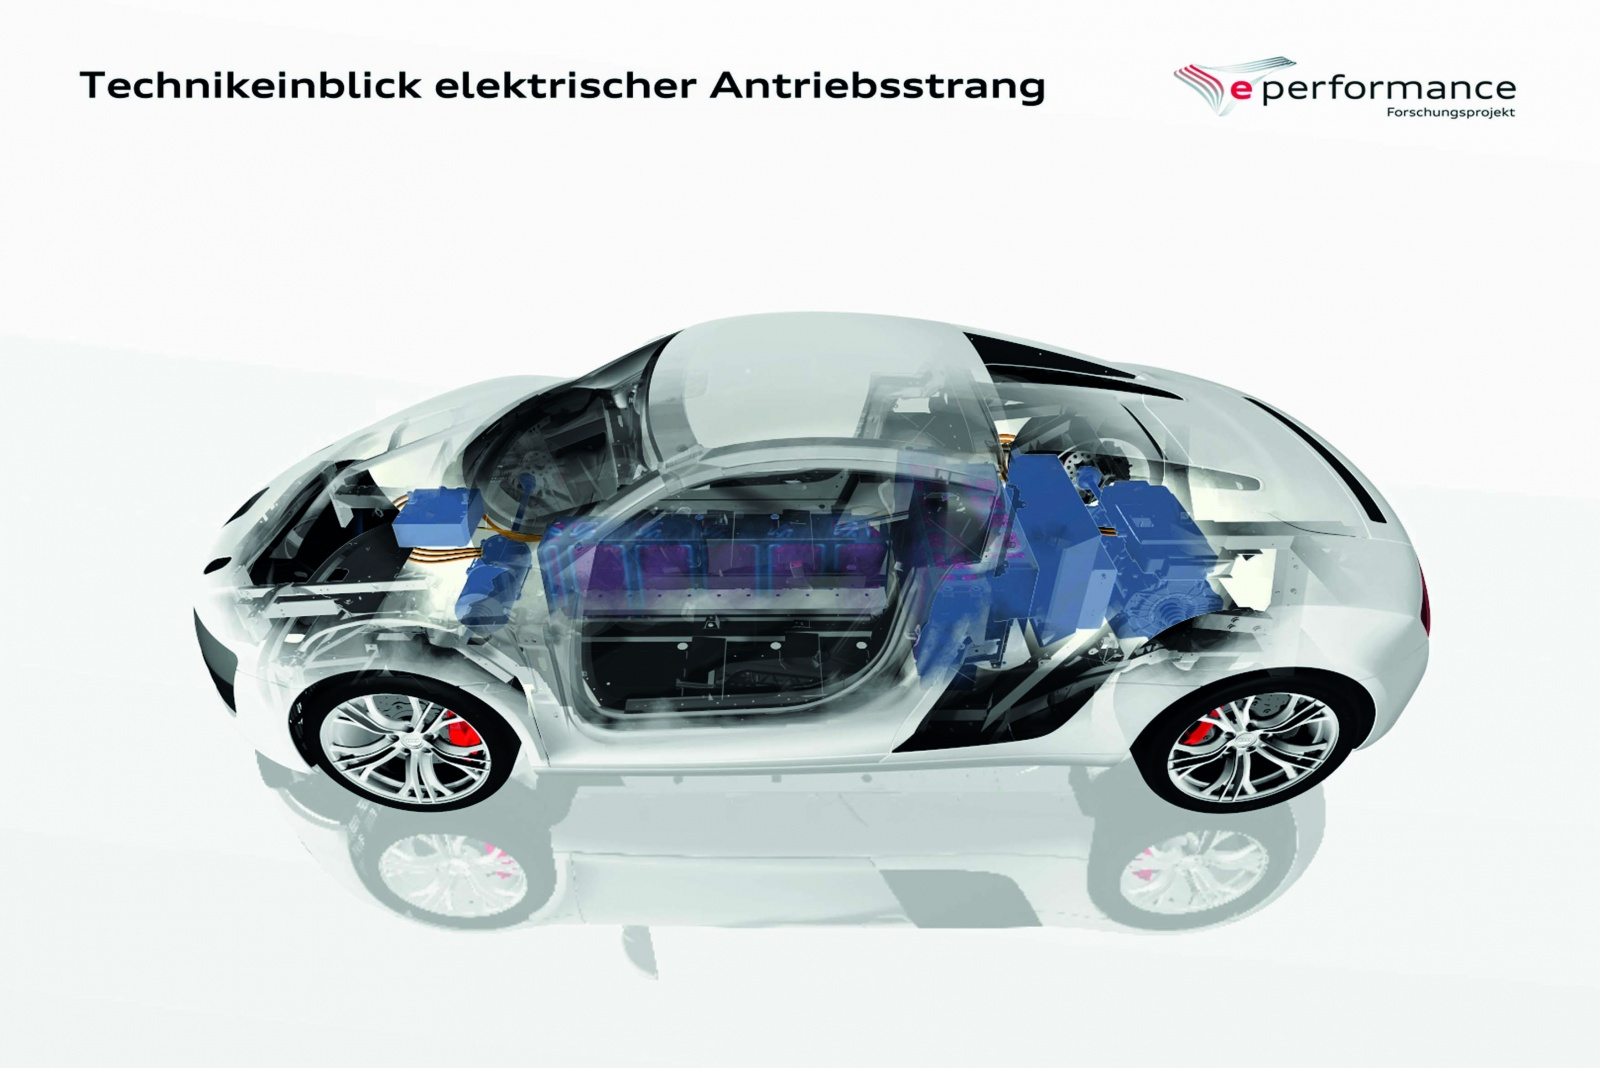 Audi future lab: mobility/e performance Battery system